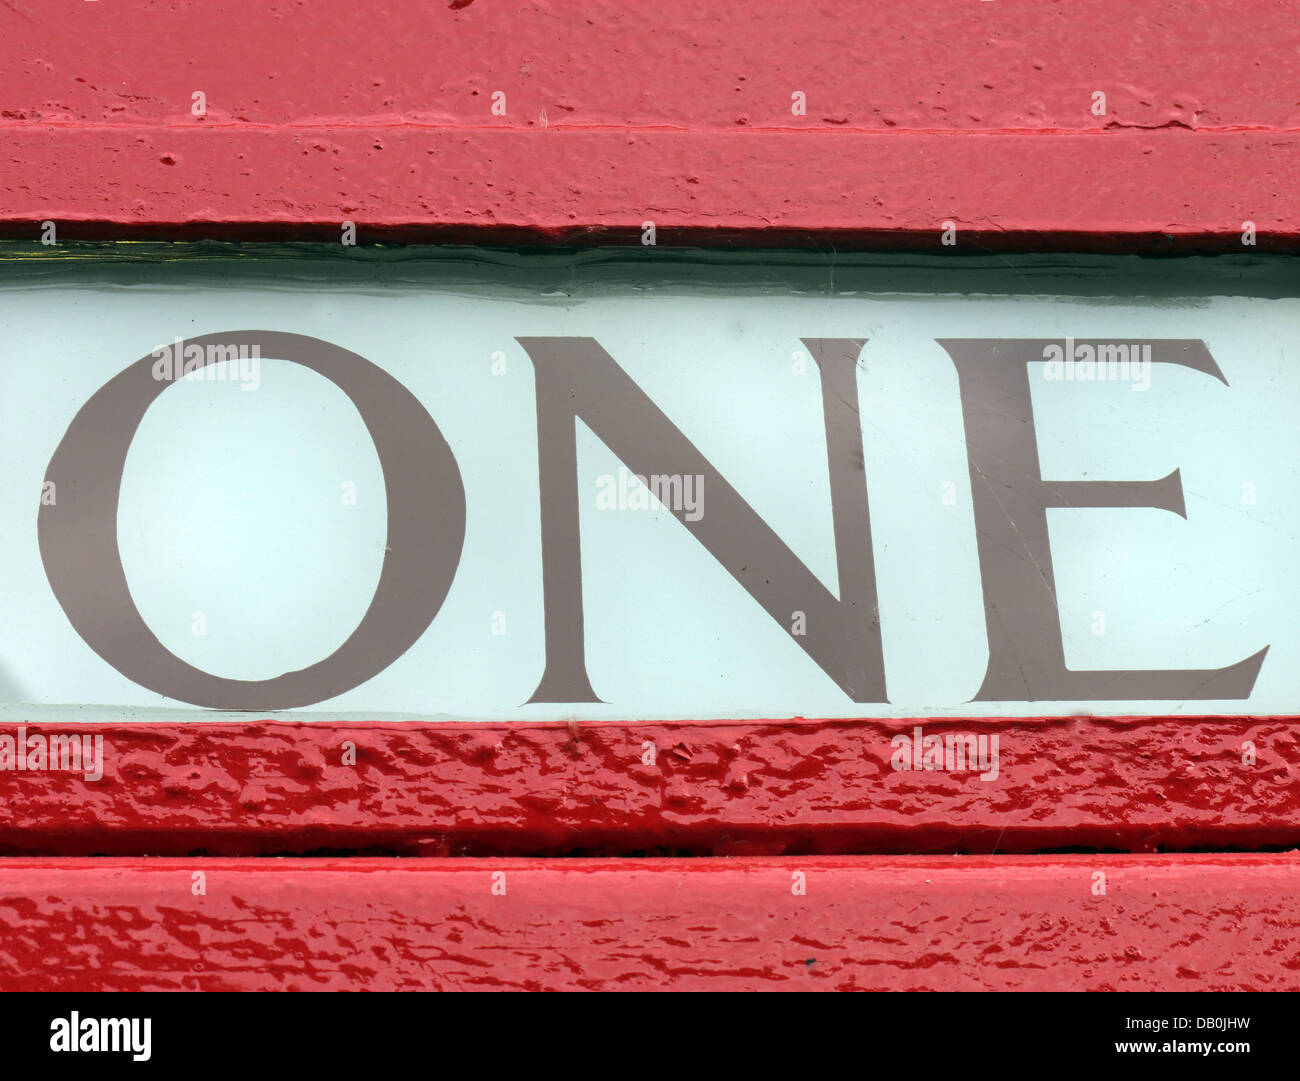 Detail of One ( 1 ) from a red British classic telephone box - Stock Image